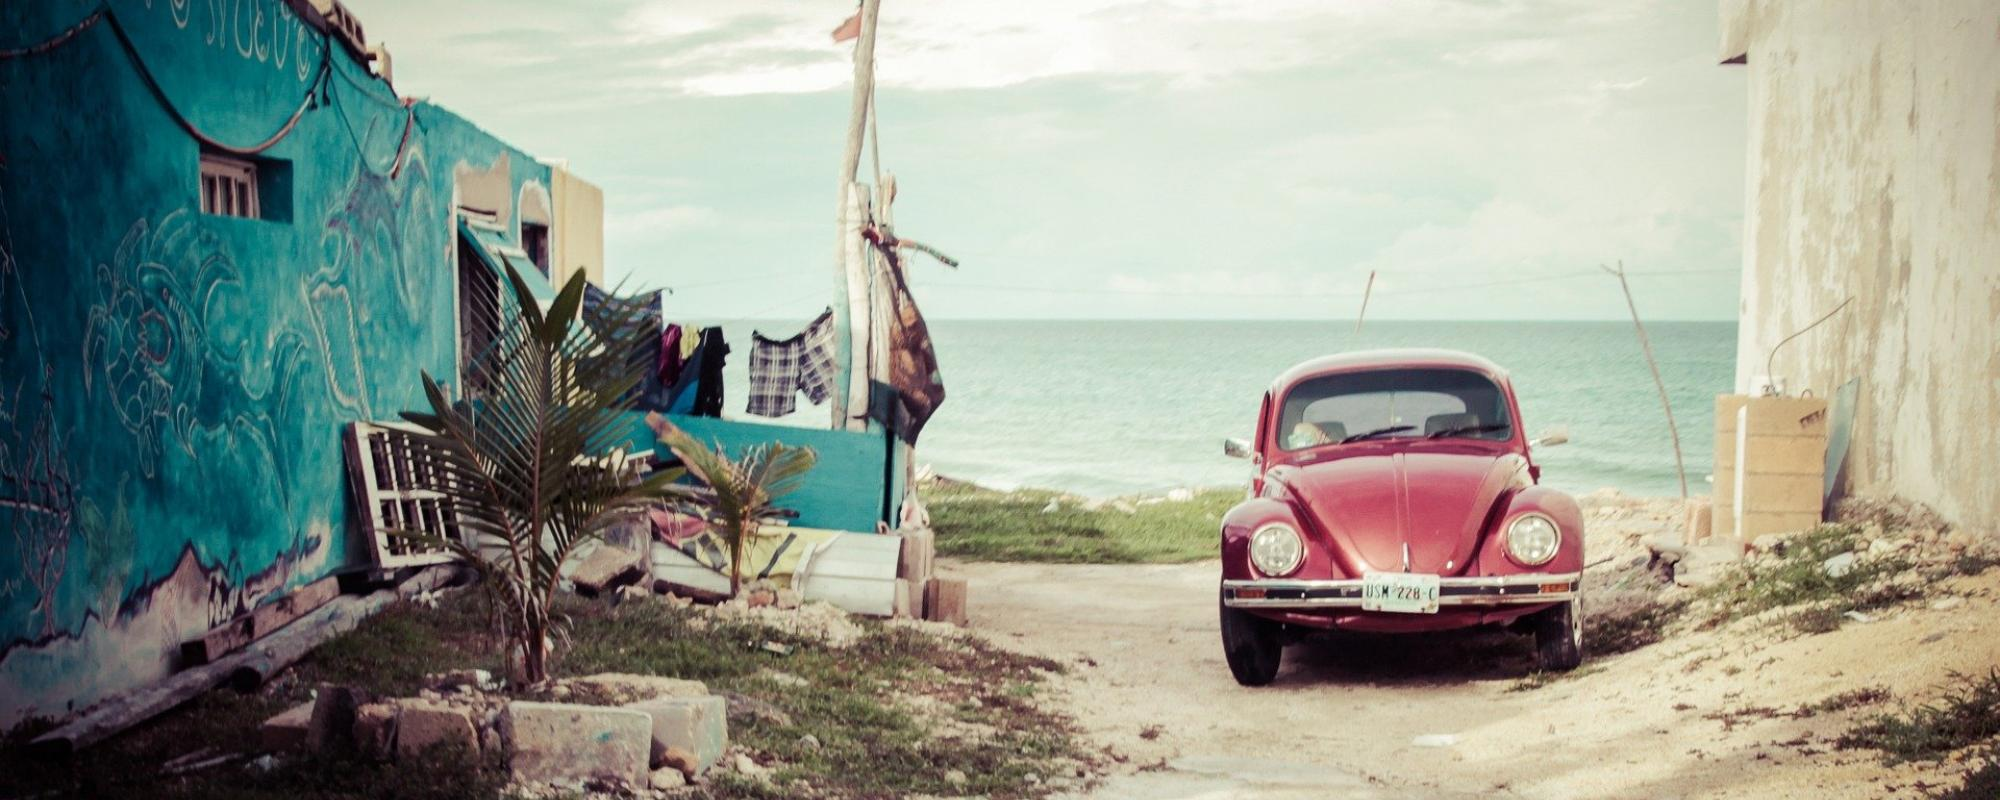 Old car and house on the border